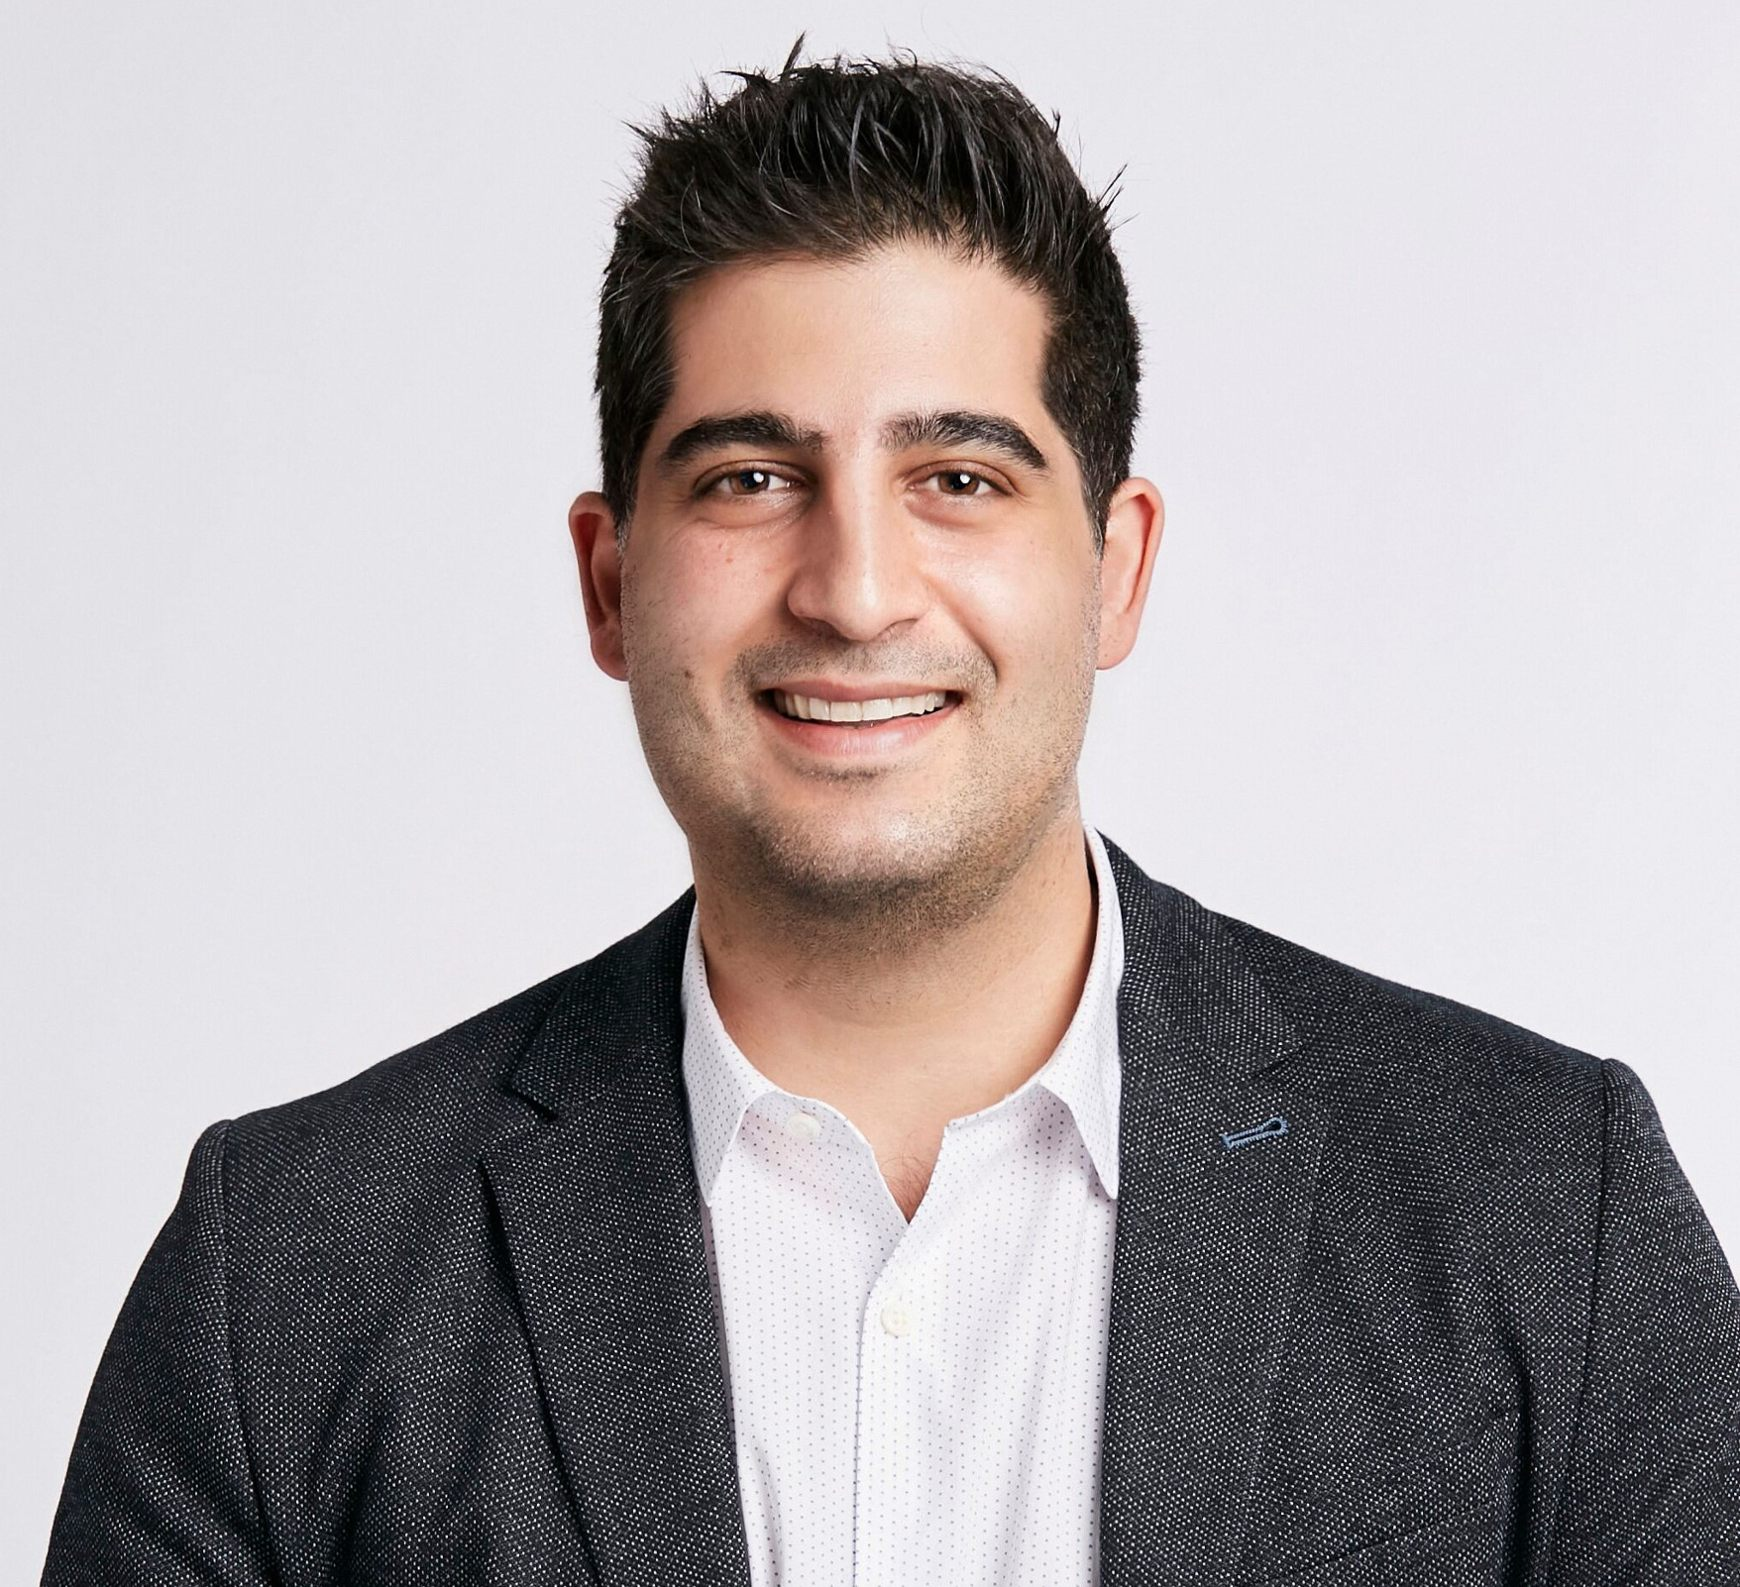 Daniel Broukhim, Co-Founder of FabFitFun